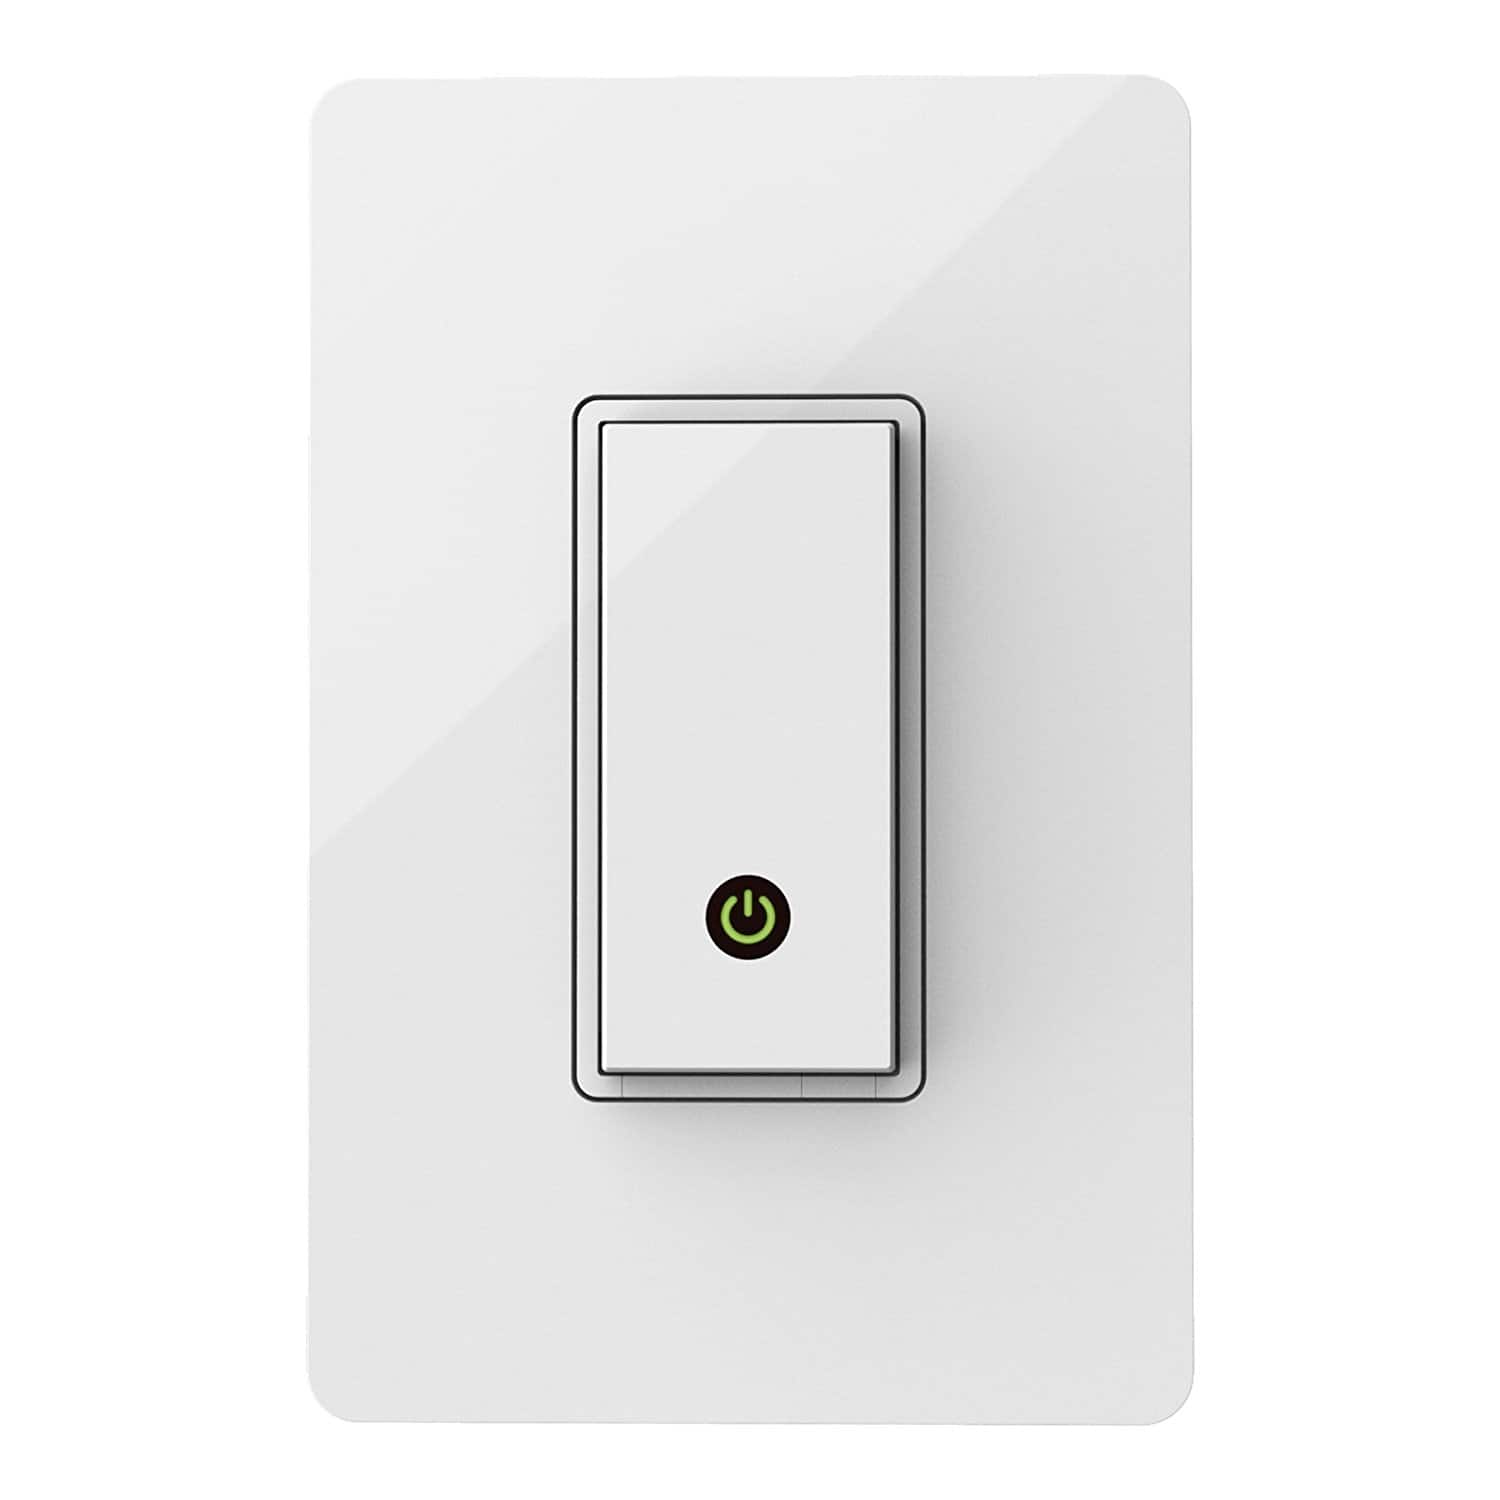 Wemo Light Switch/Dimmer Switch $10 off Various Sites, $39.99/$69.99